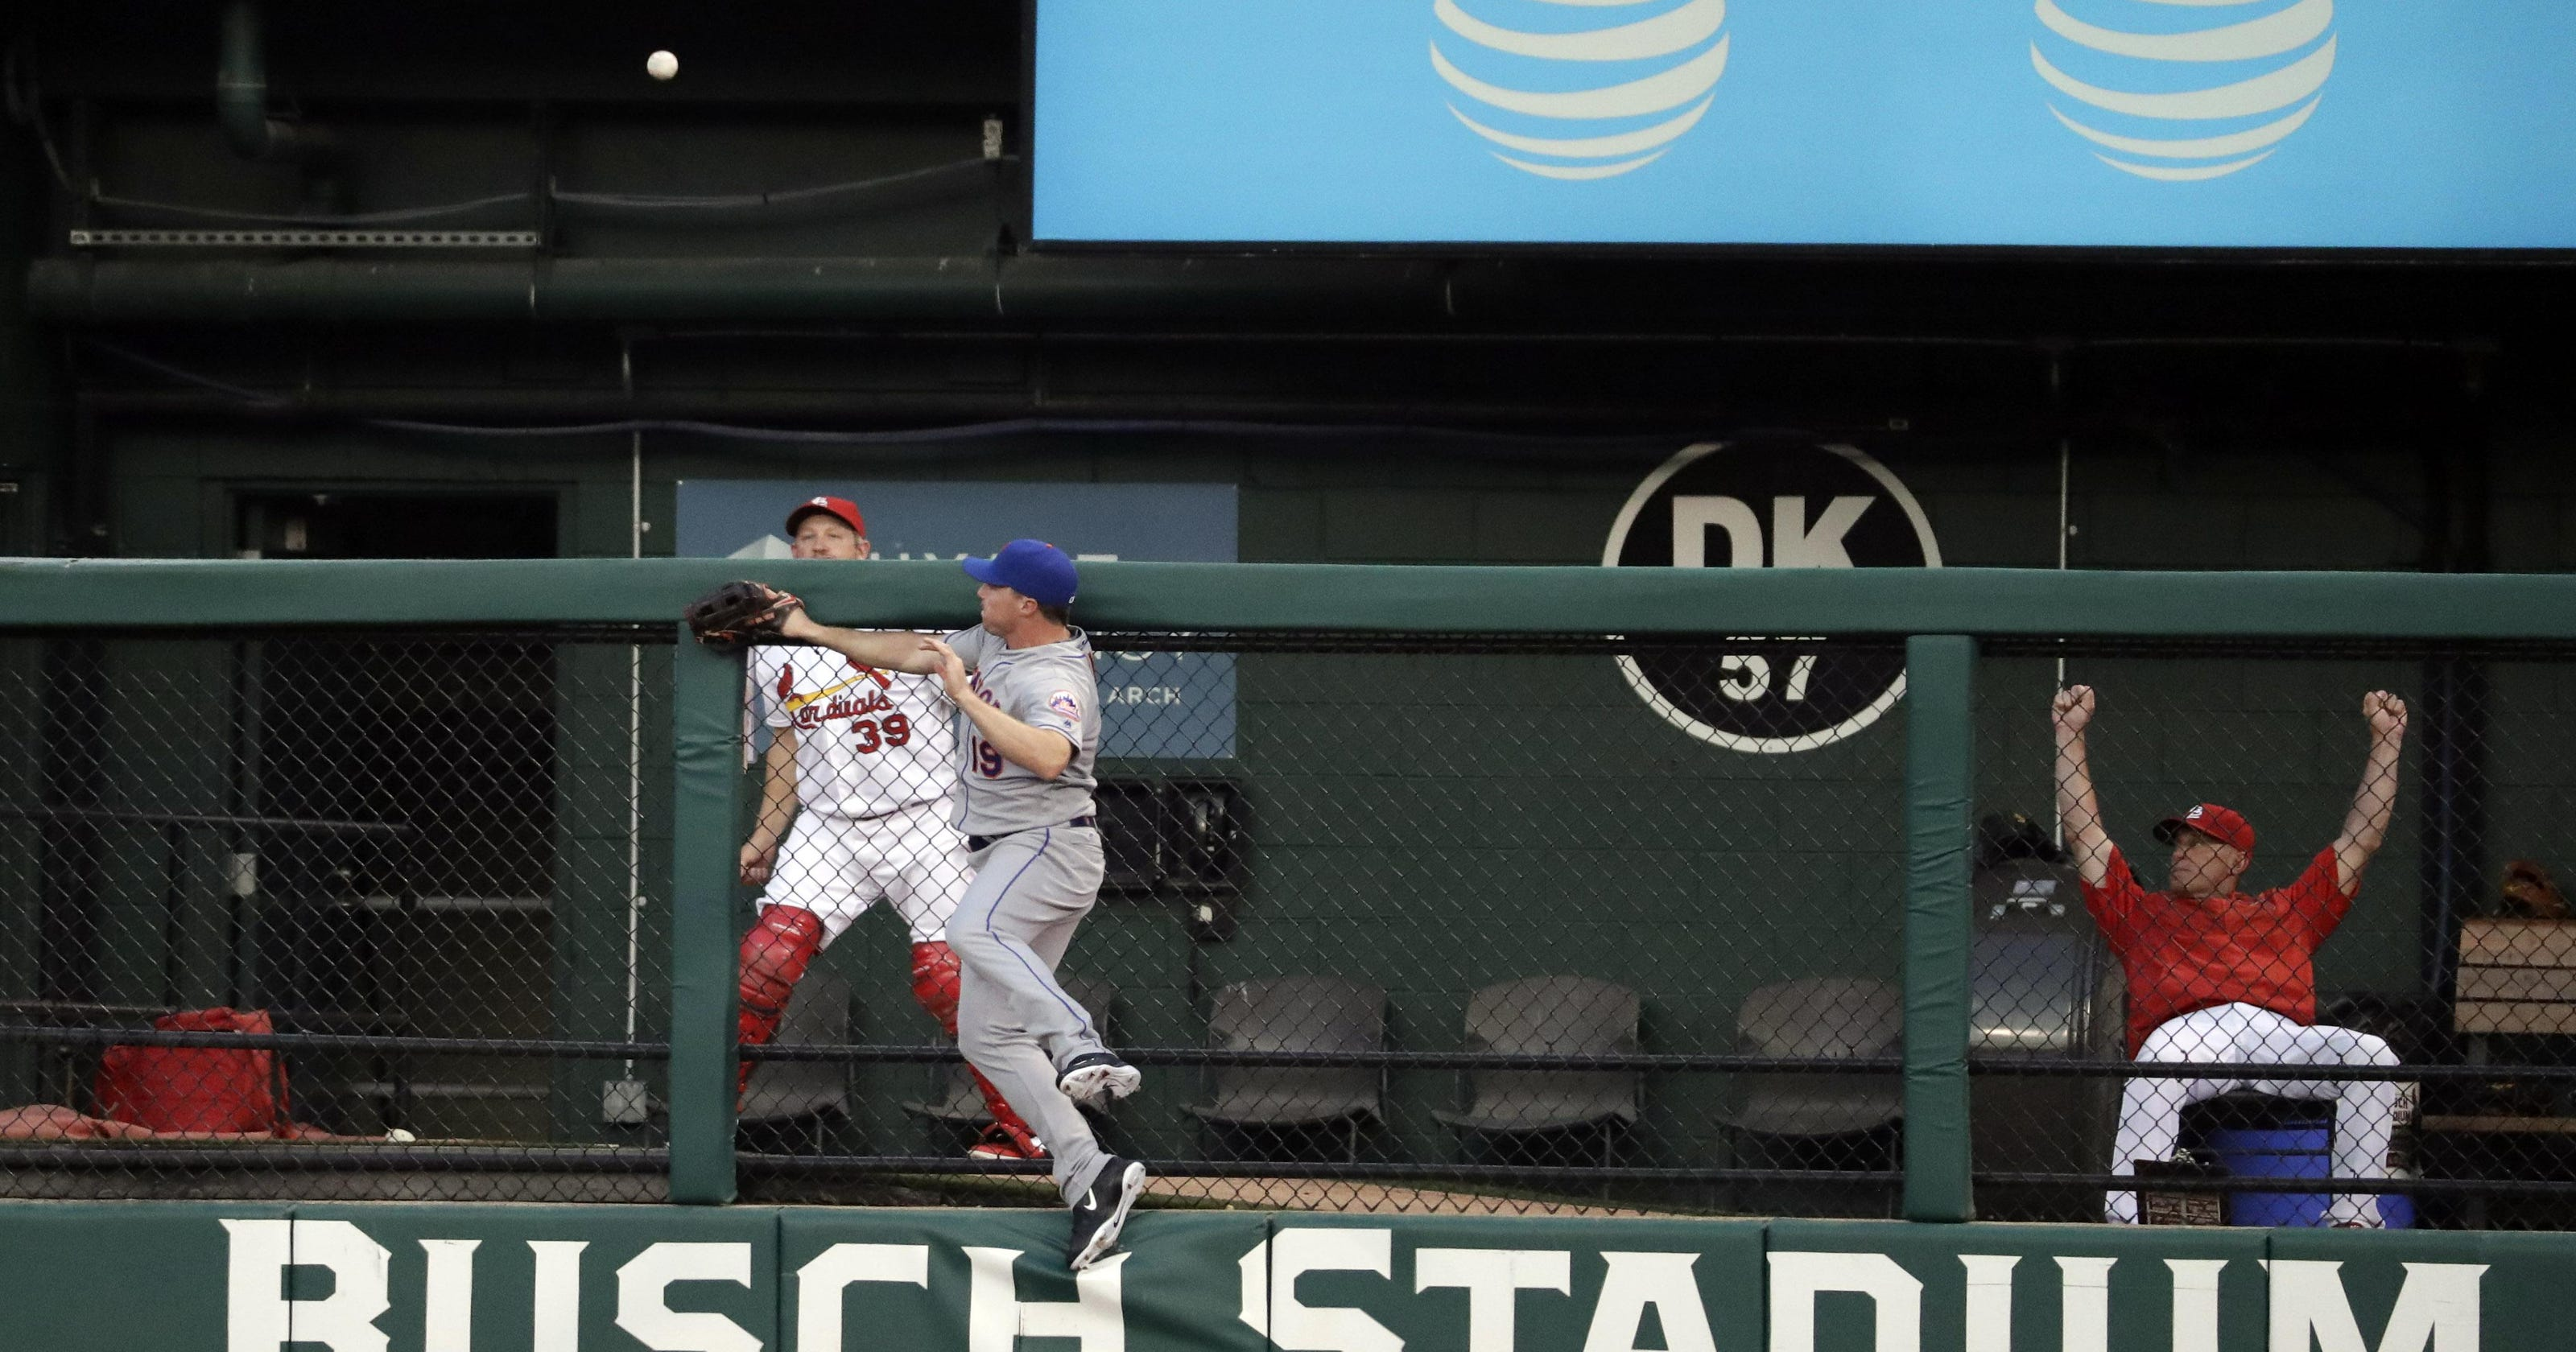 Mets fall to Cards 8-1 as Bruce exits early with cramp